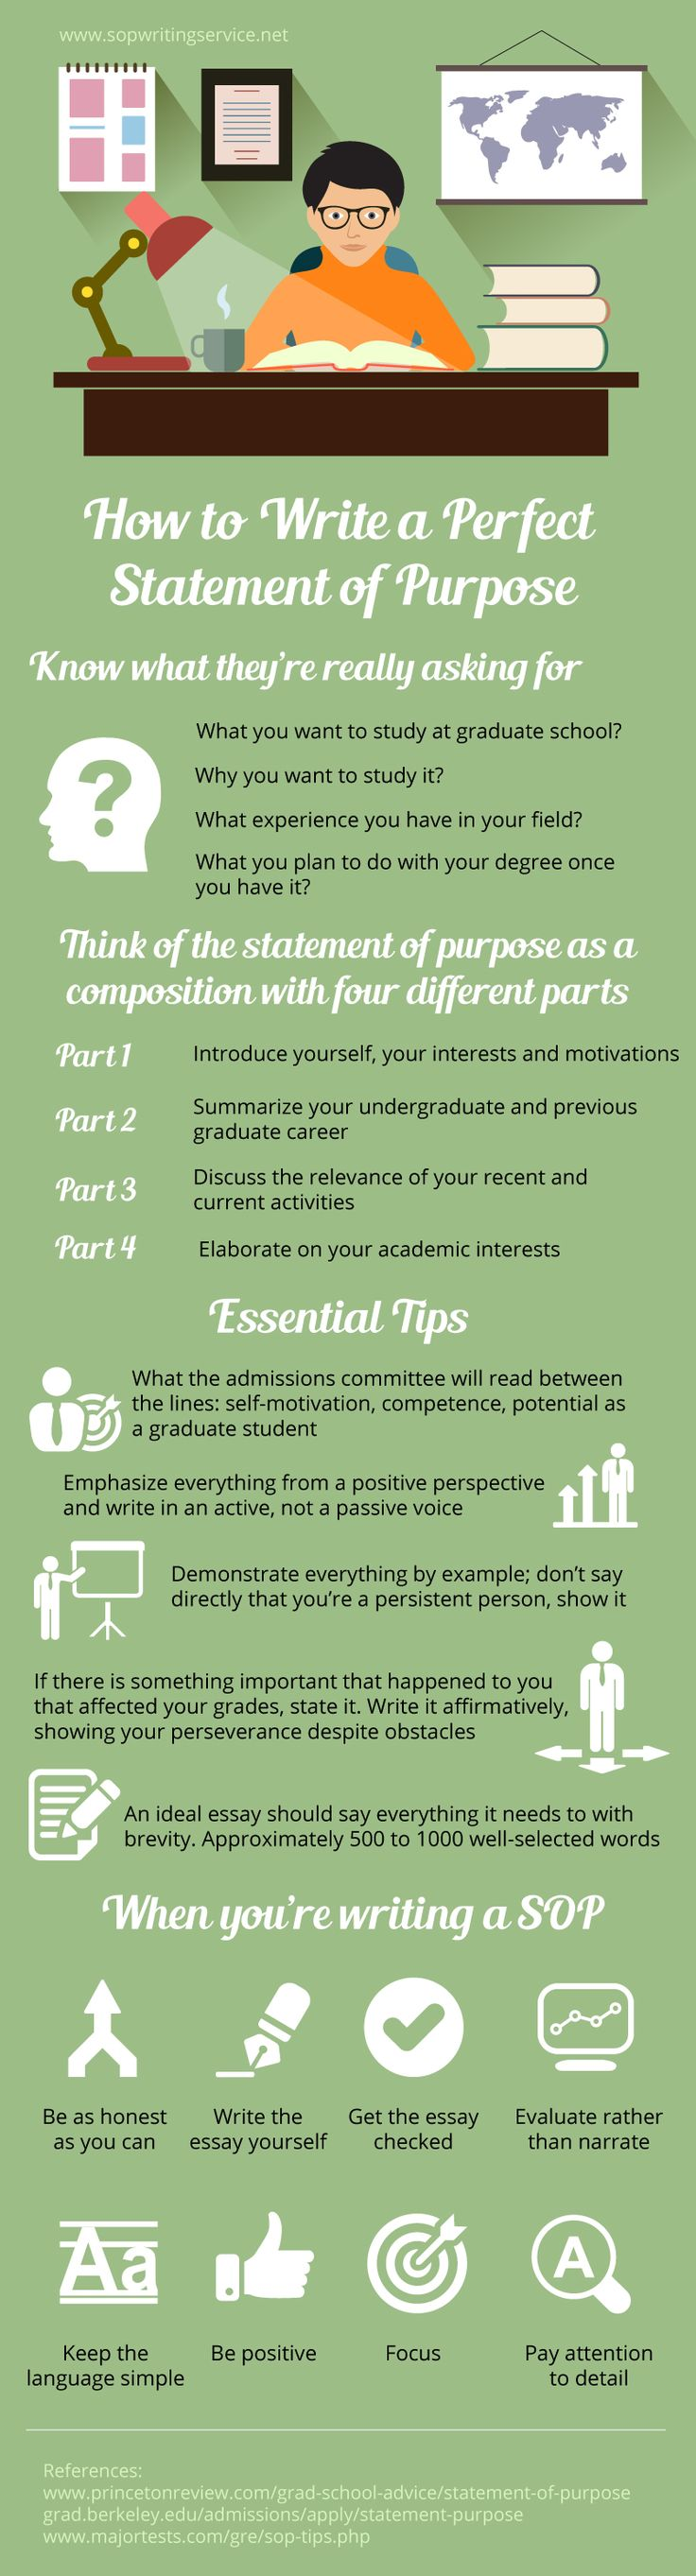 best ideas about personal statements graduate this infographic presentation presents on how to write a perfect statement of purpose to get more details please today on this link